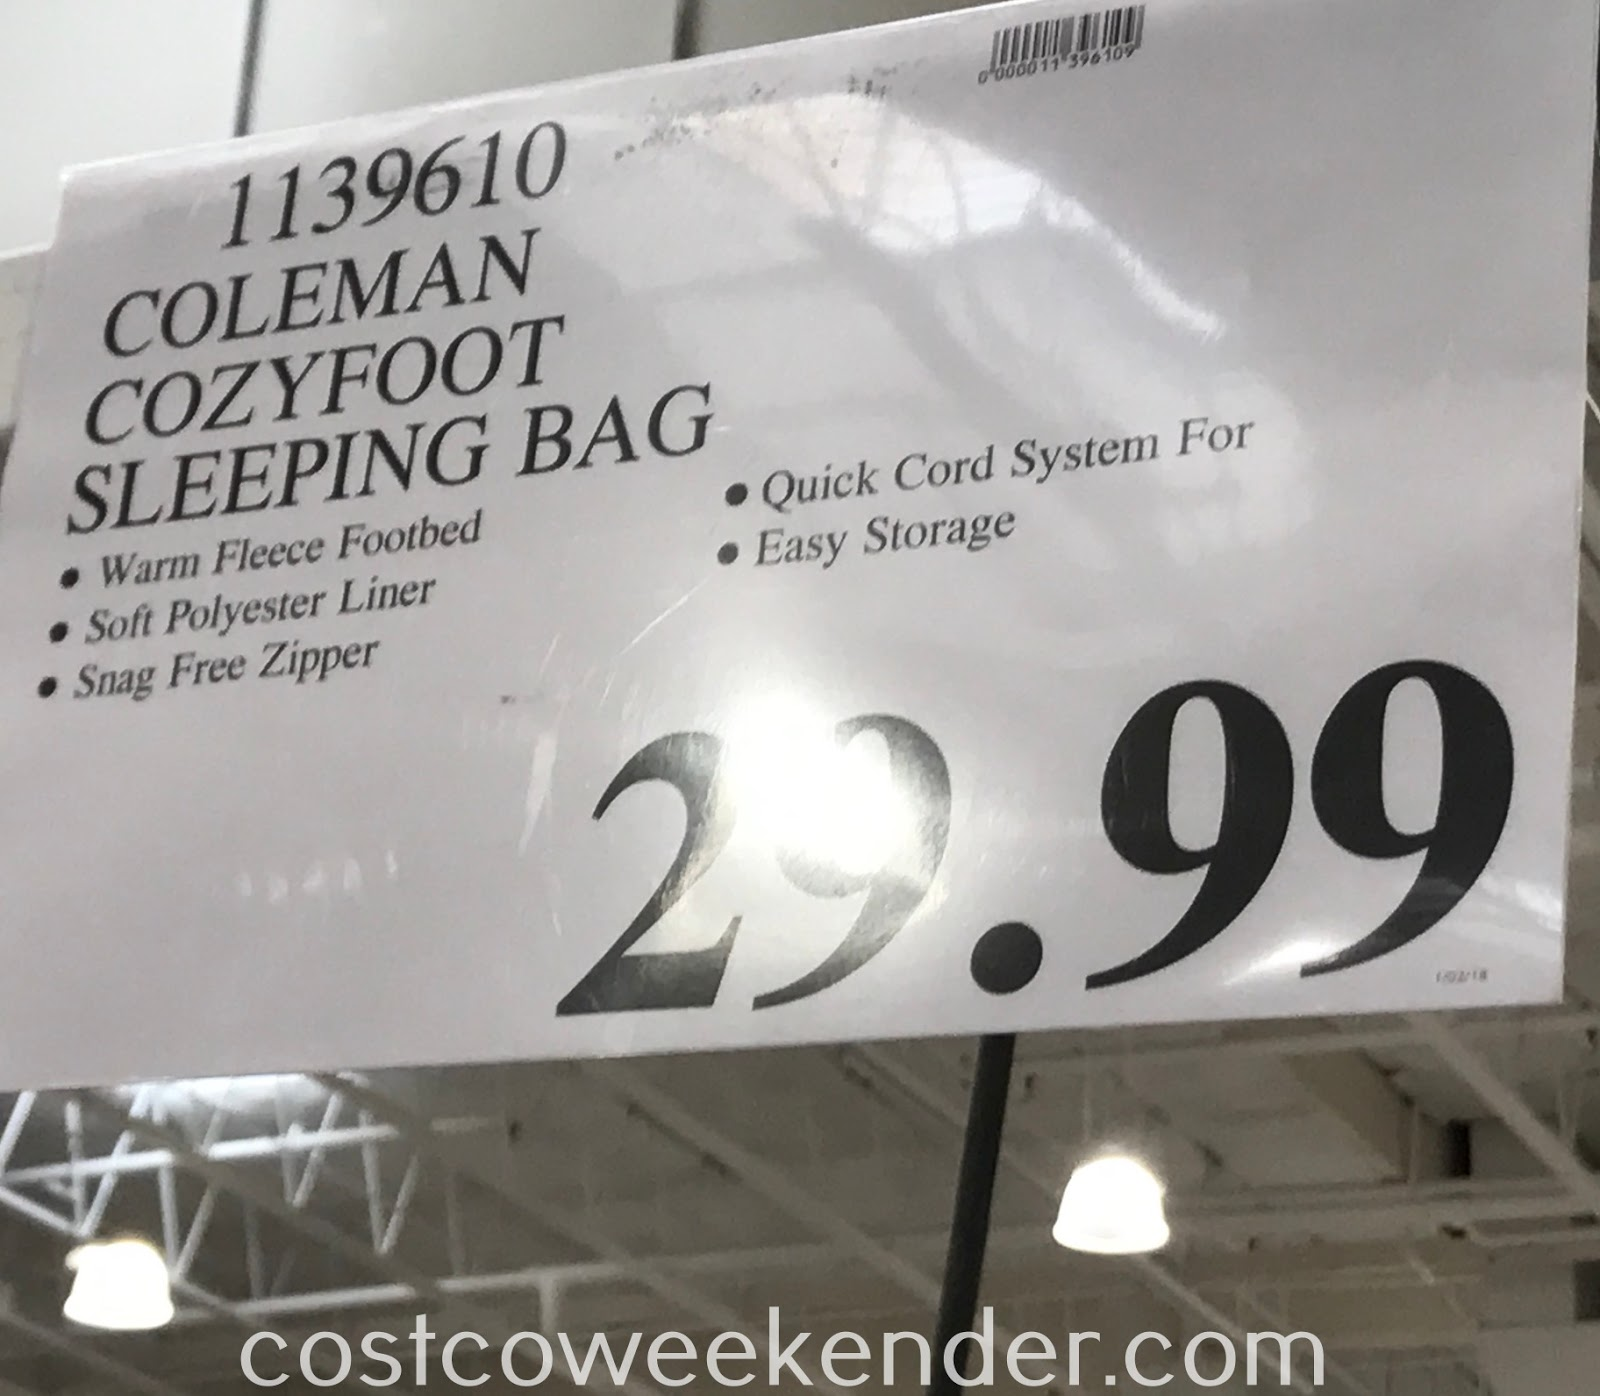 Deal for the Coleman CozyFoot Sleeping Bag at Costco